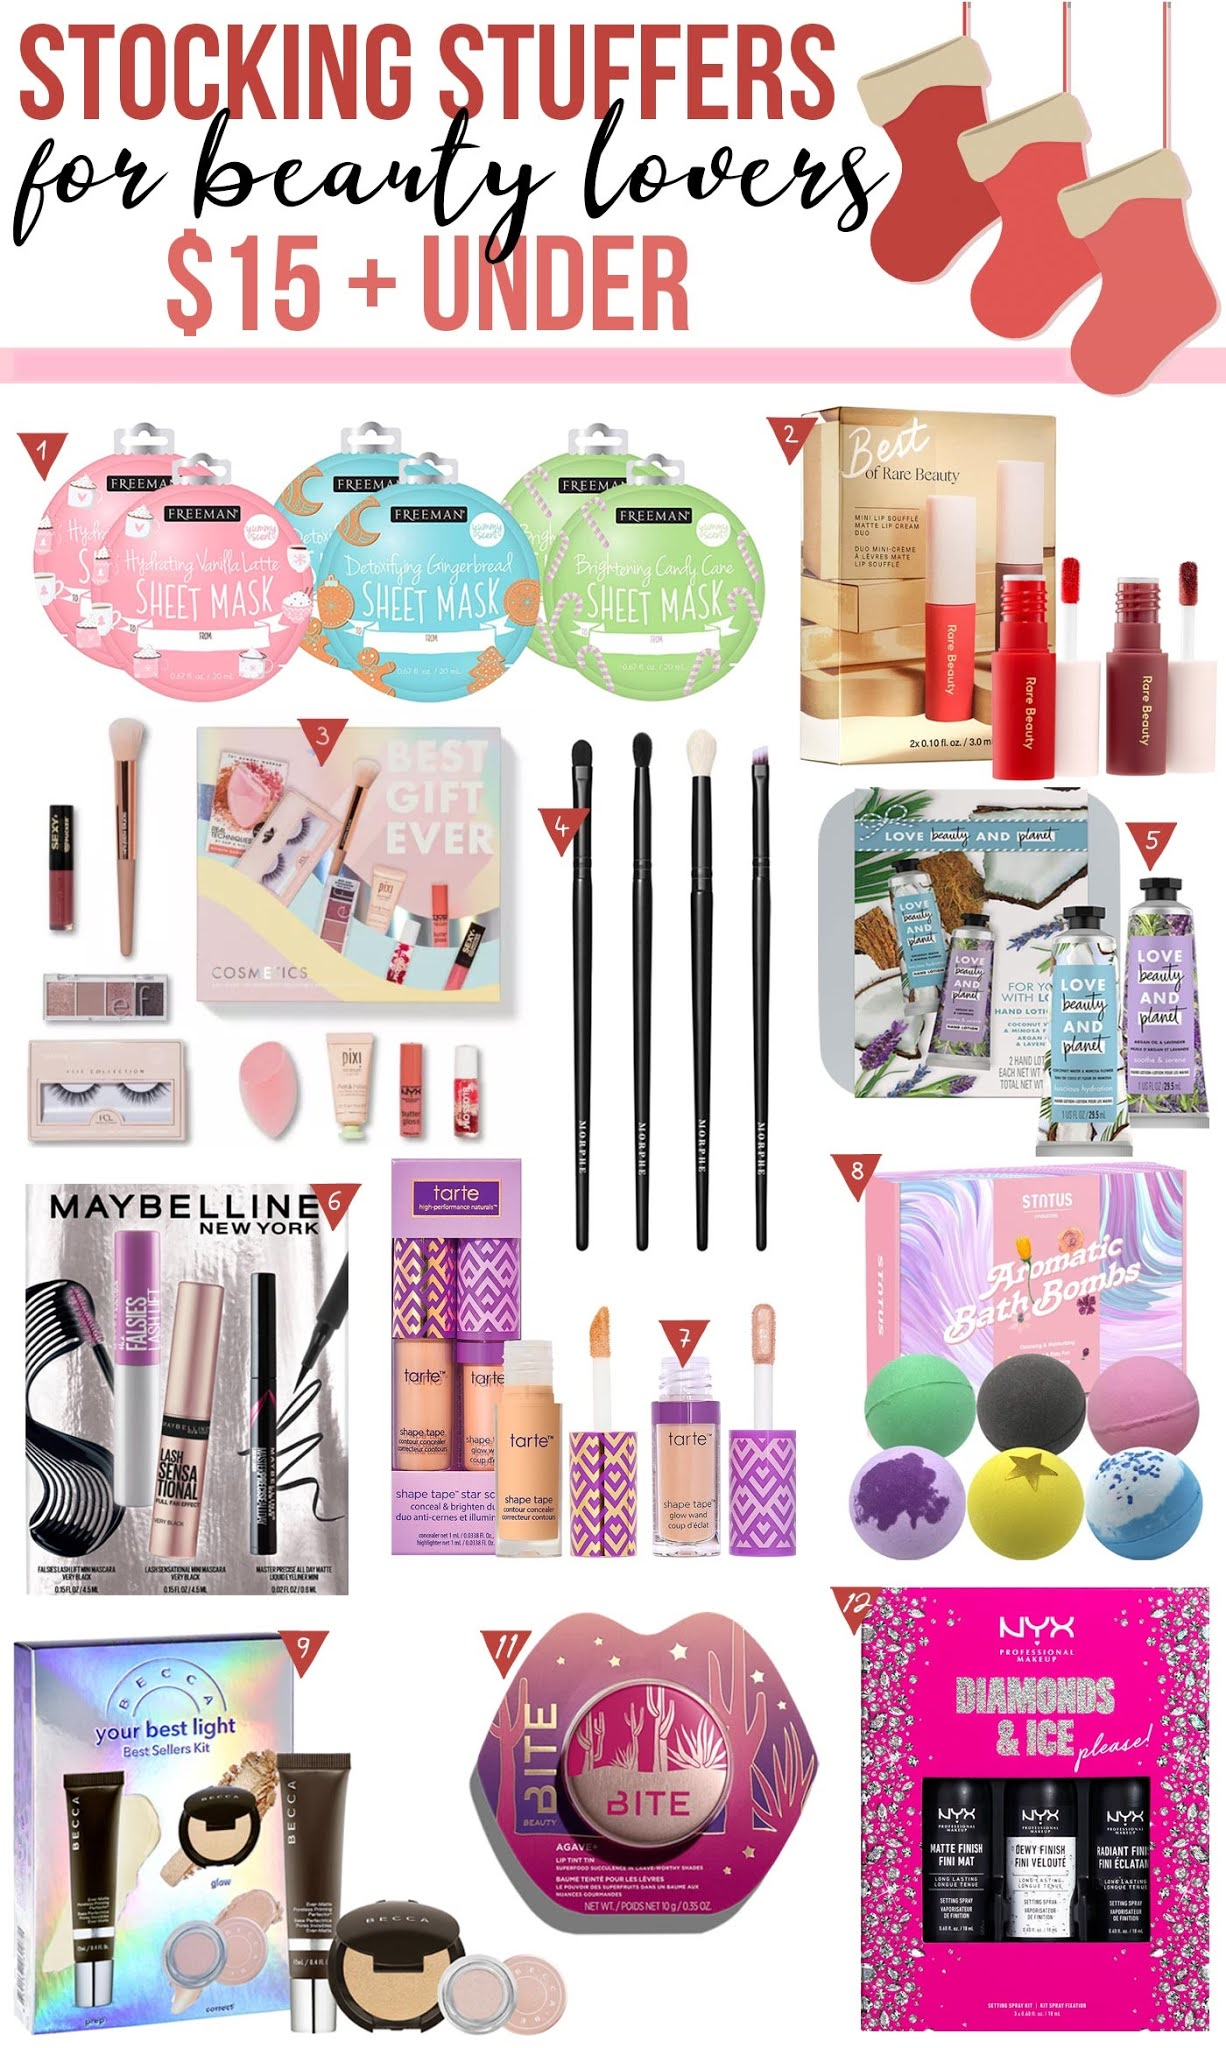 Amazon 11 Beauty Stocking Stuffers $15 and Under Gift Guide